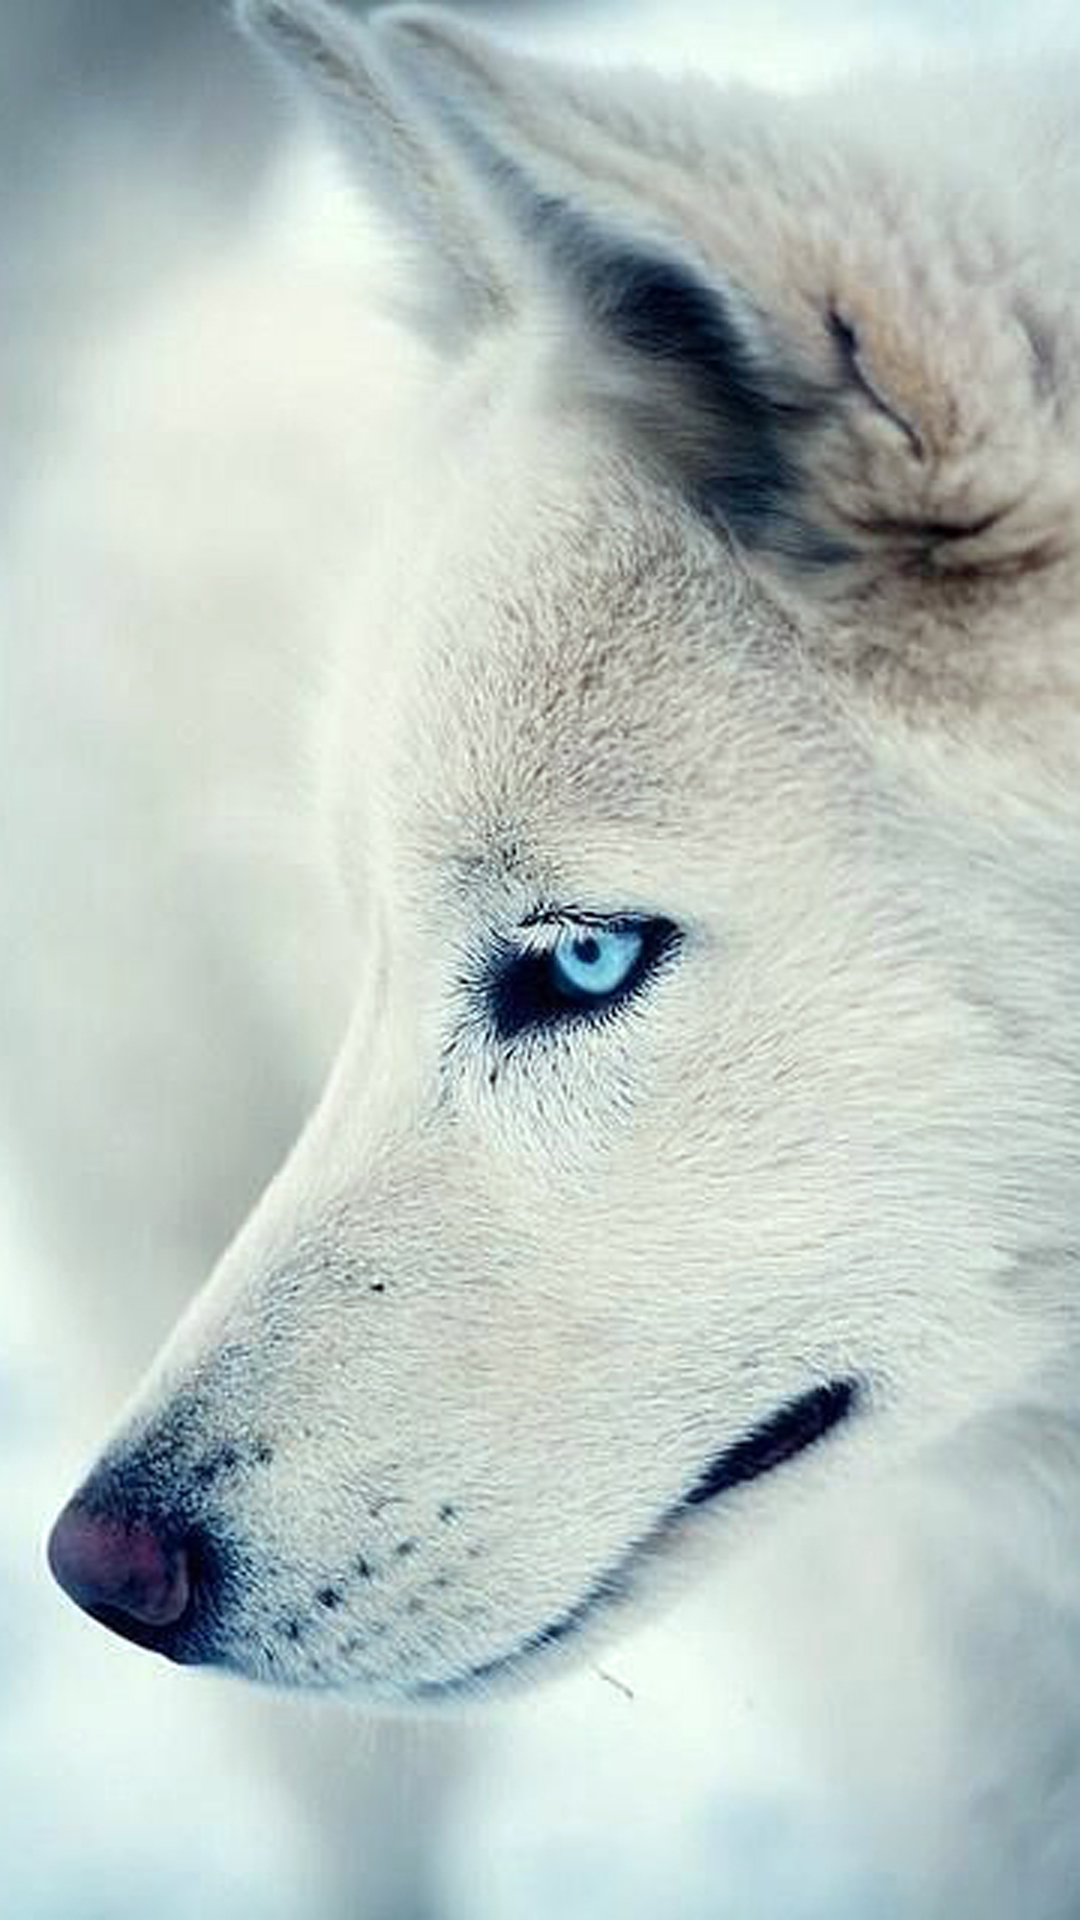 iPhone wallpaper white wolf 3Wallpapers : notre sélection de fonds d'écran du 06/02/2018